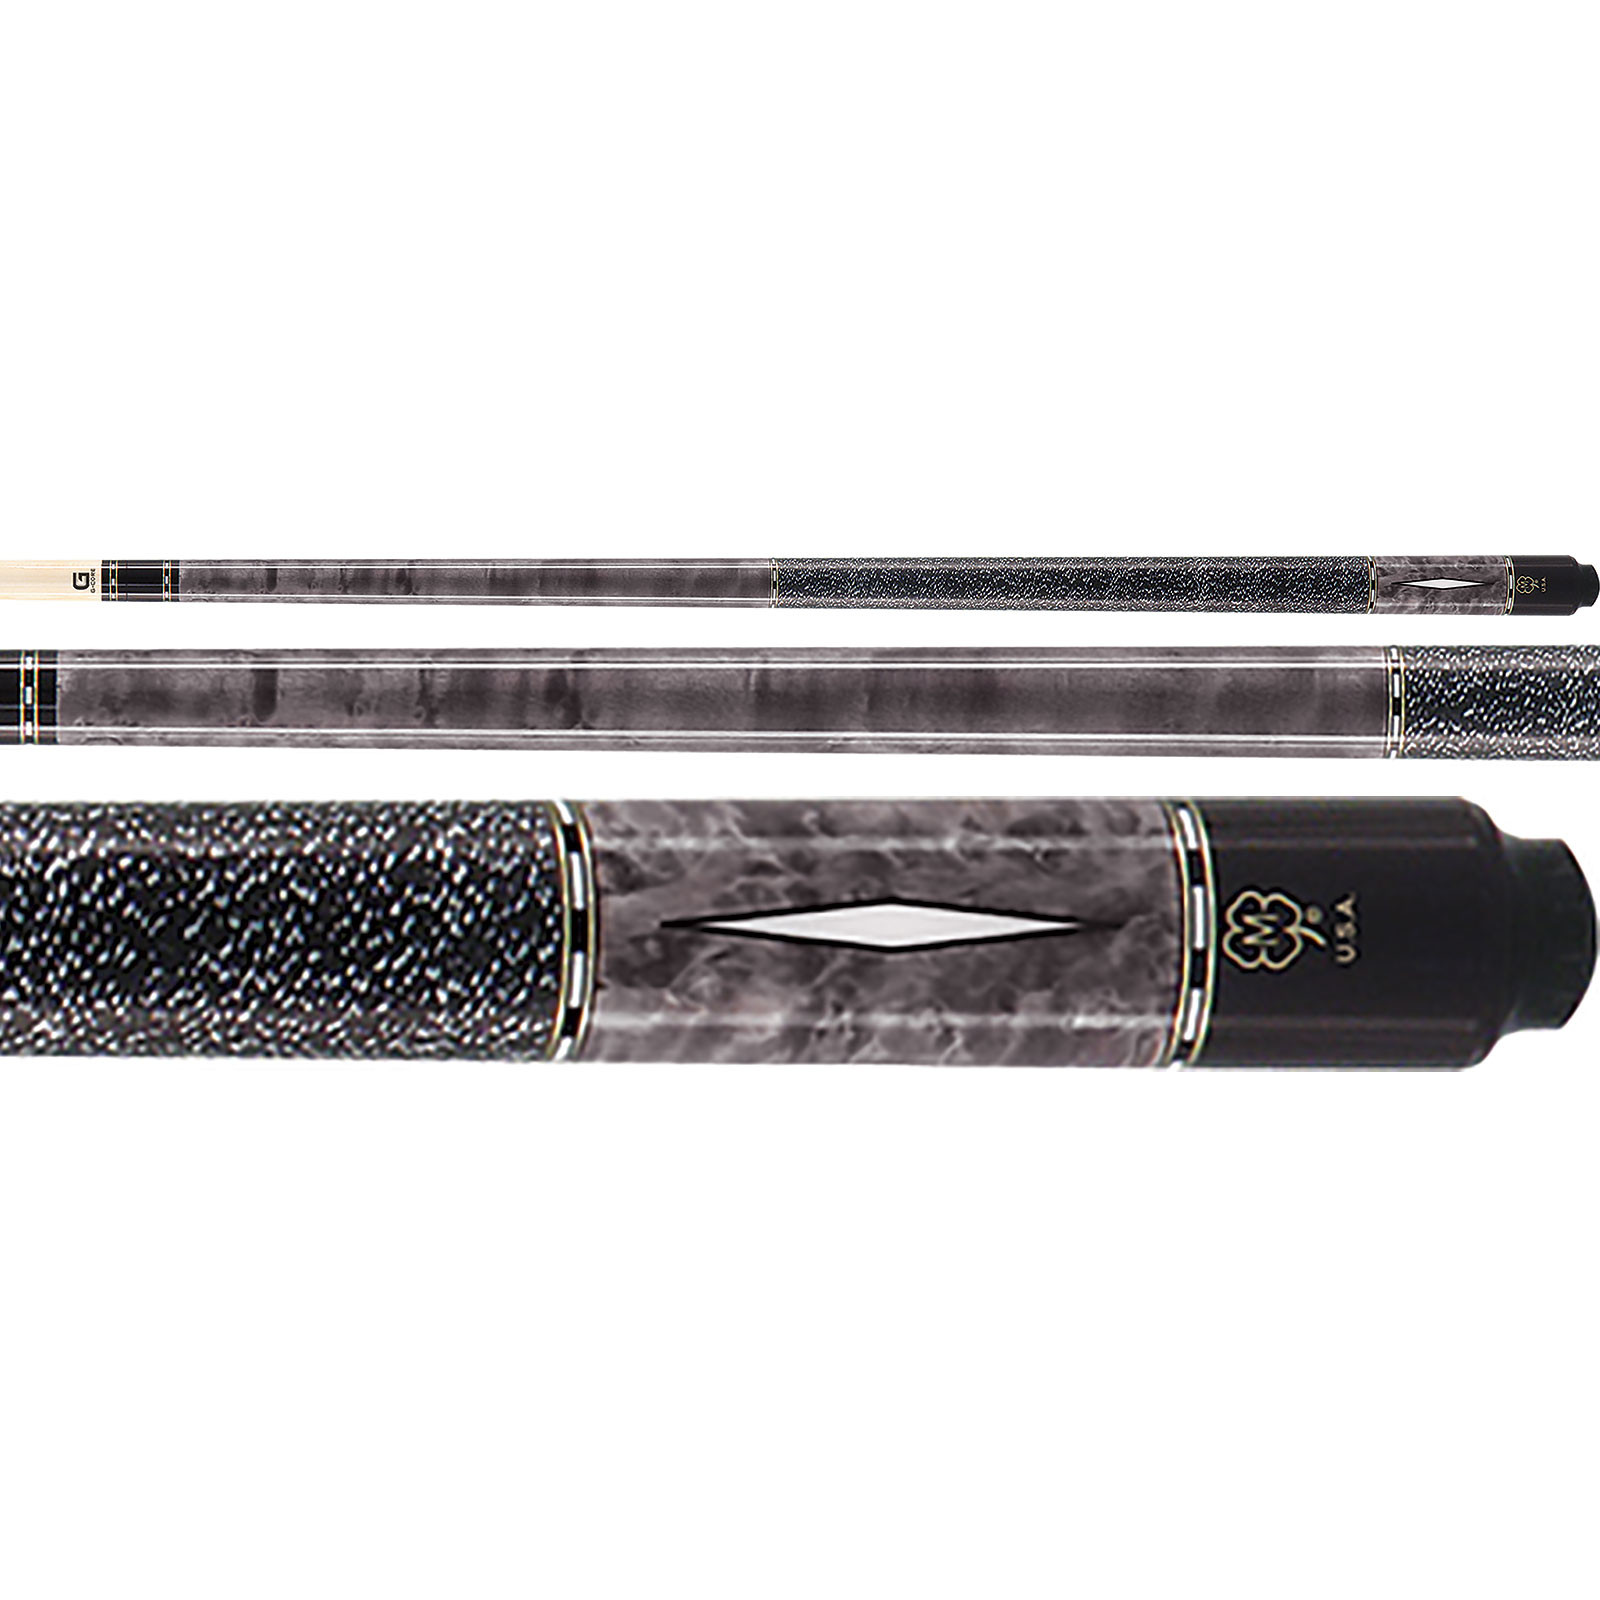 McDermott G302 G-Series Grey Pool Cue